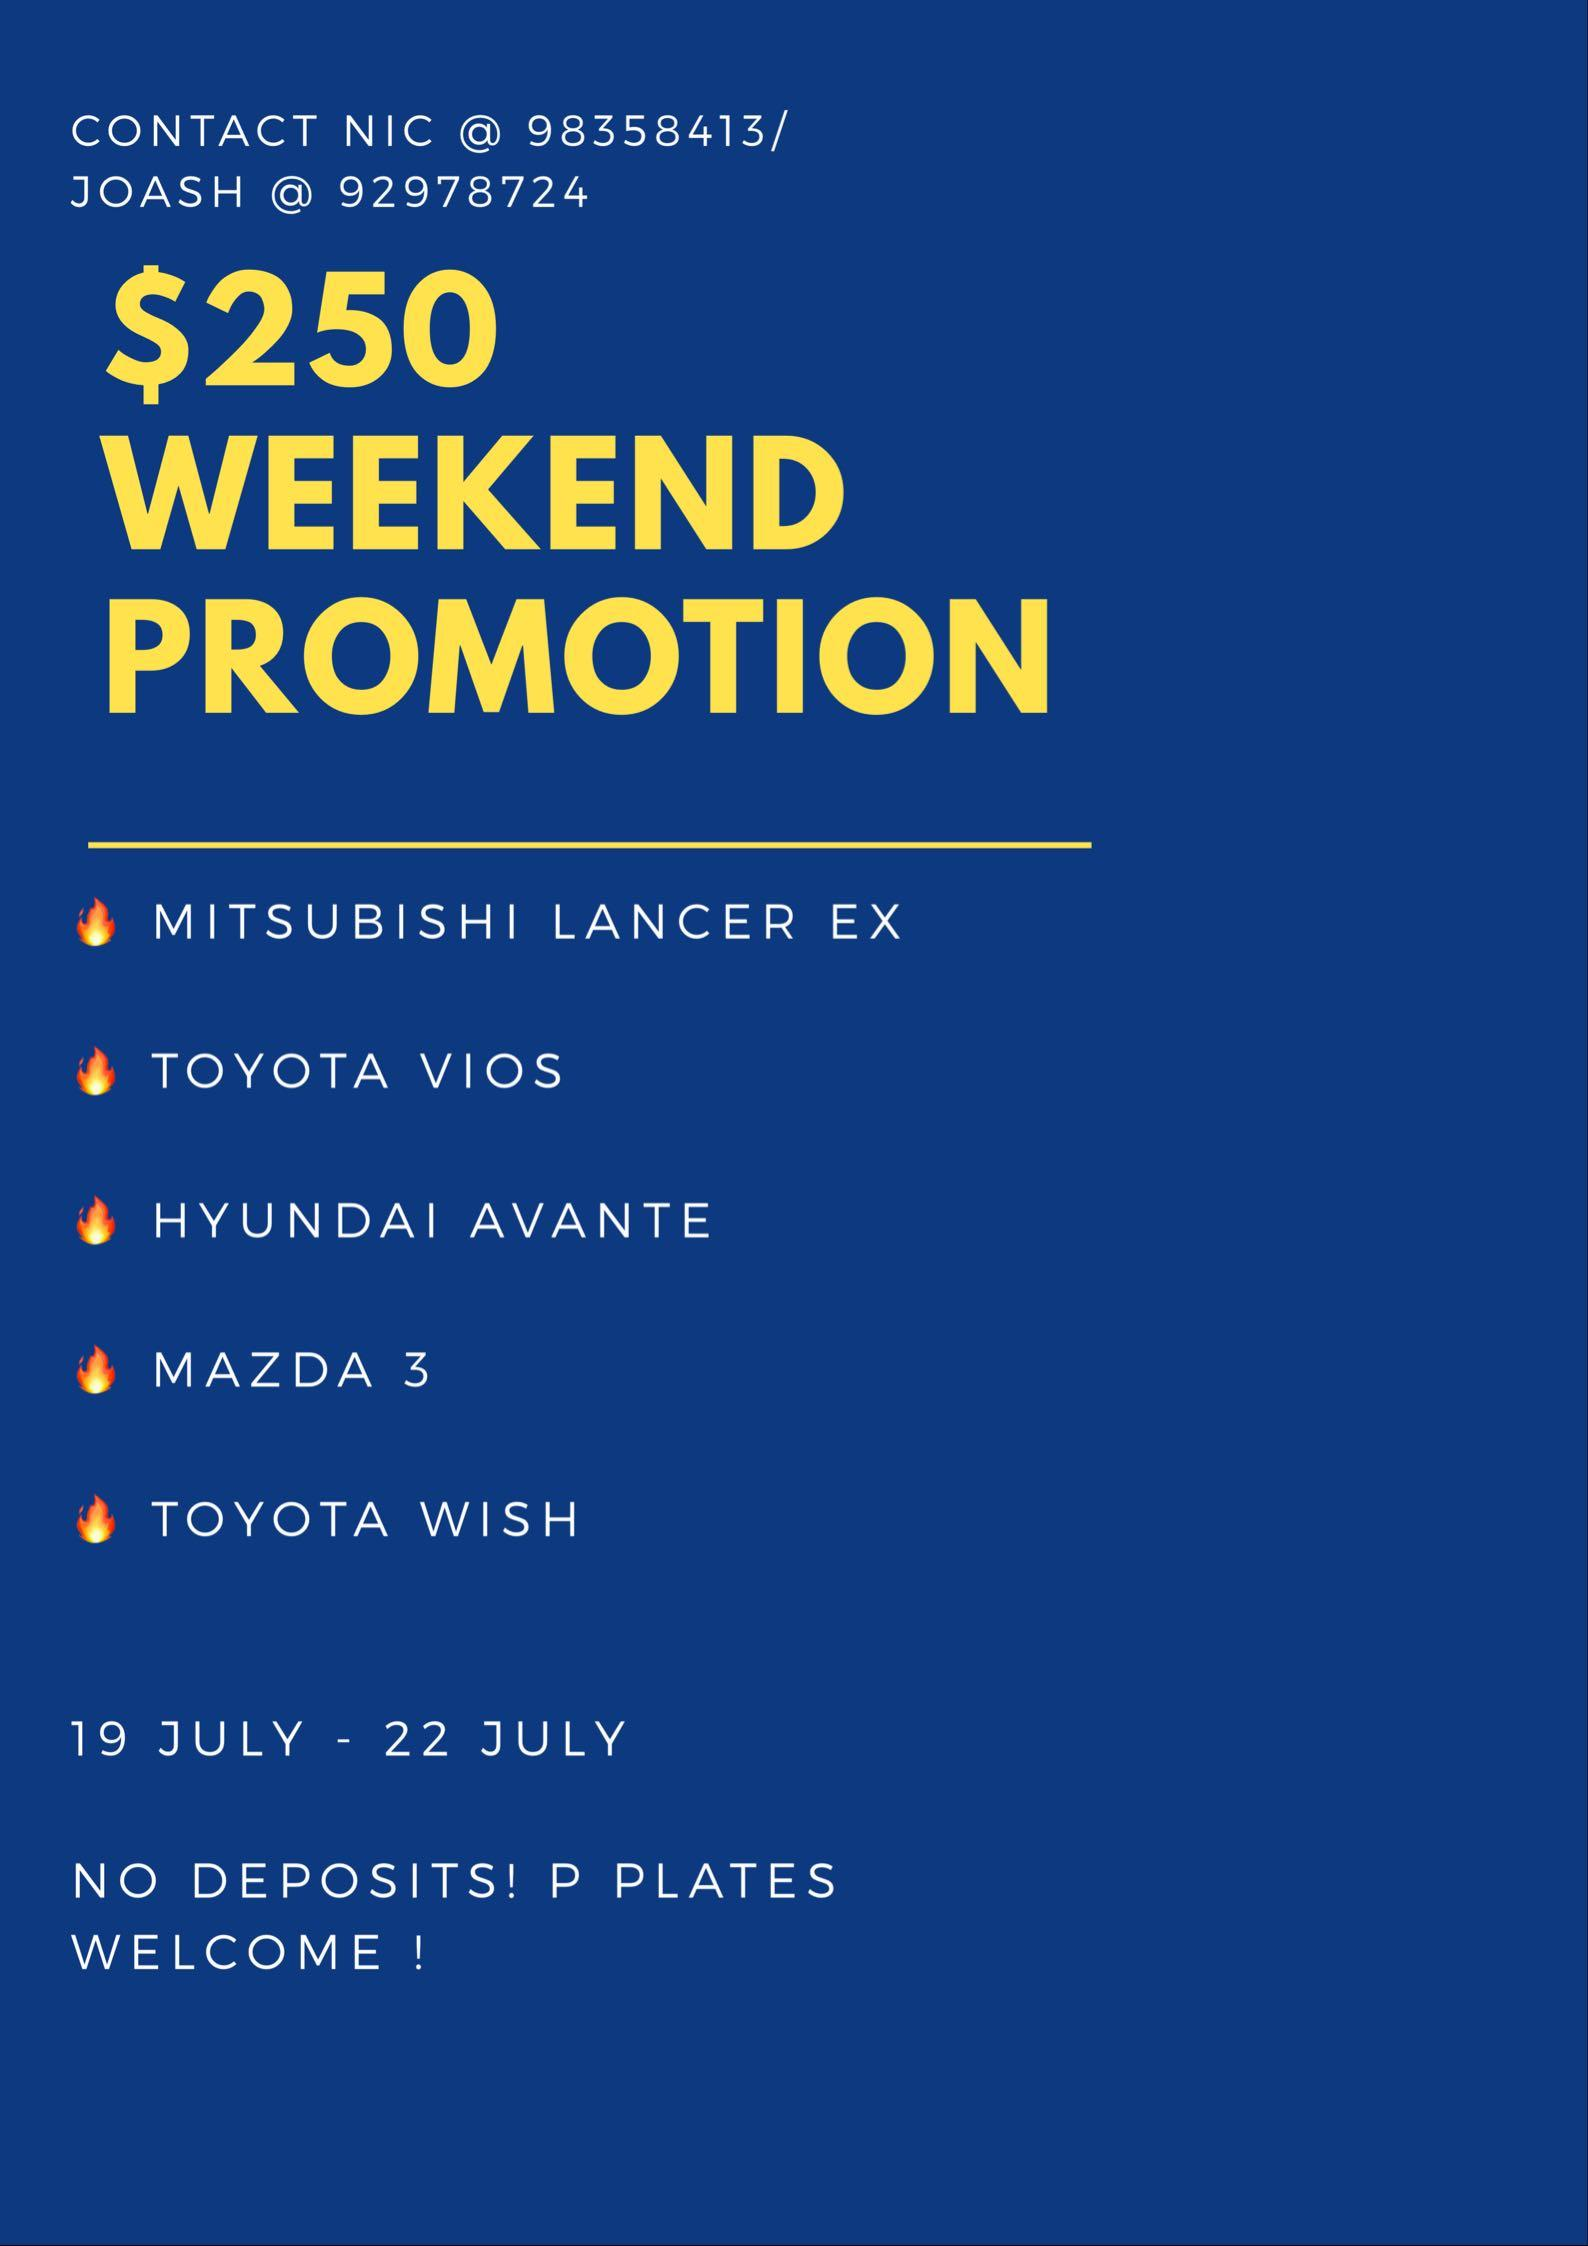 🚘$250 WEEKEND PACKAGE! FASTEST FINGERS FIRST! 🔥👀BOOK NOW! 😁